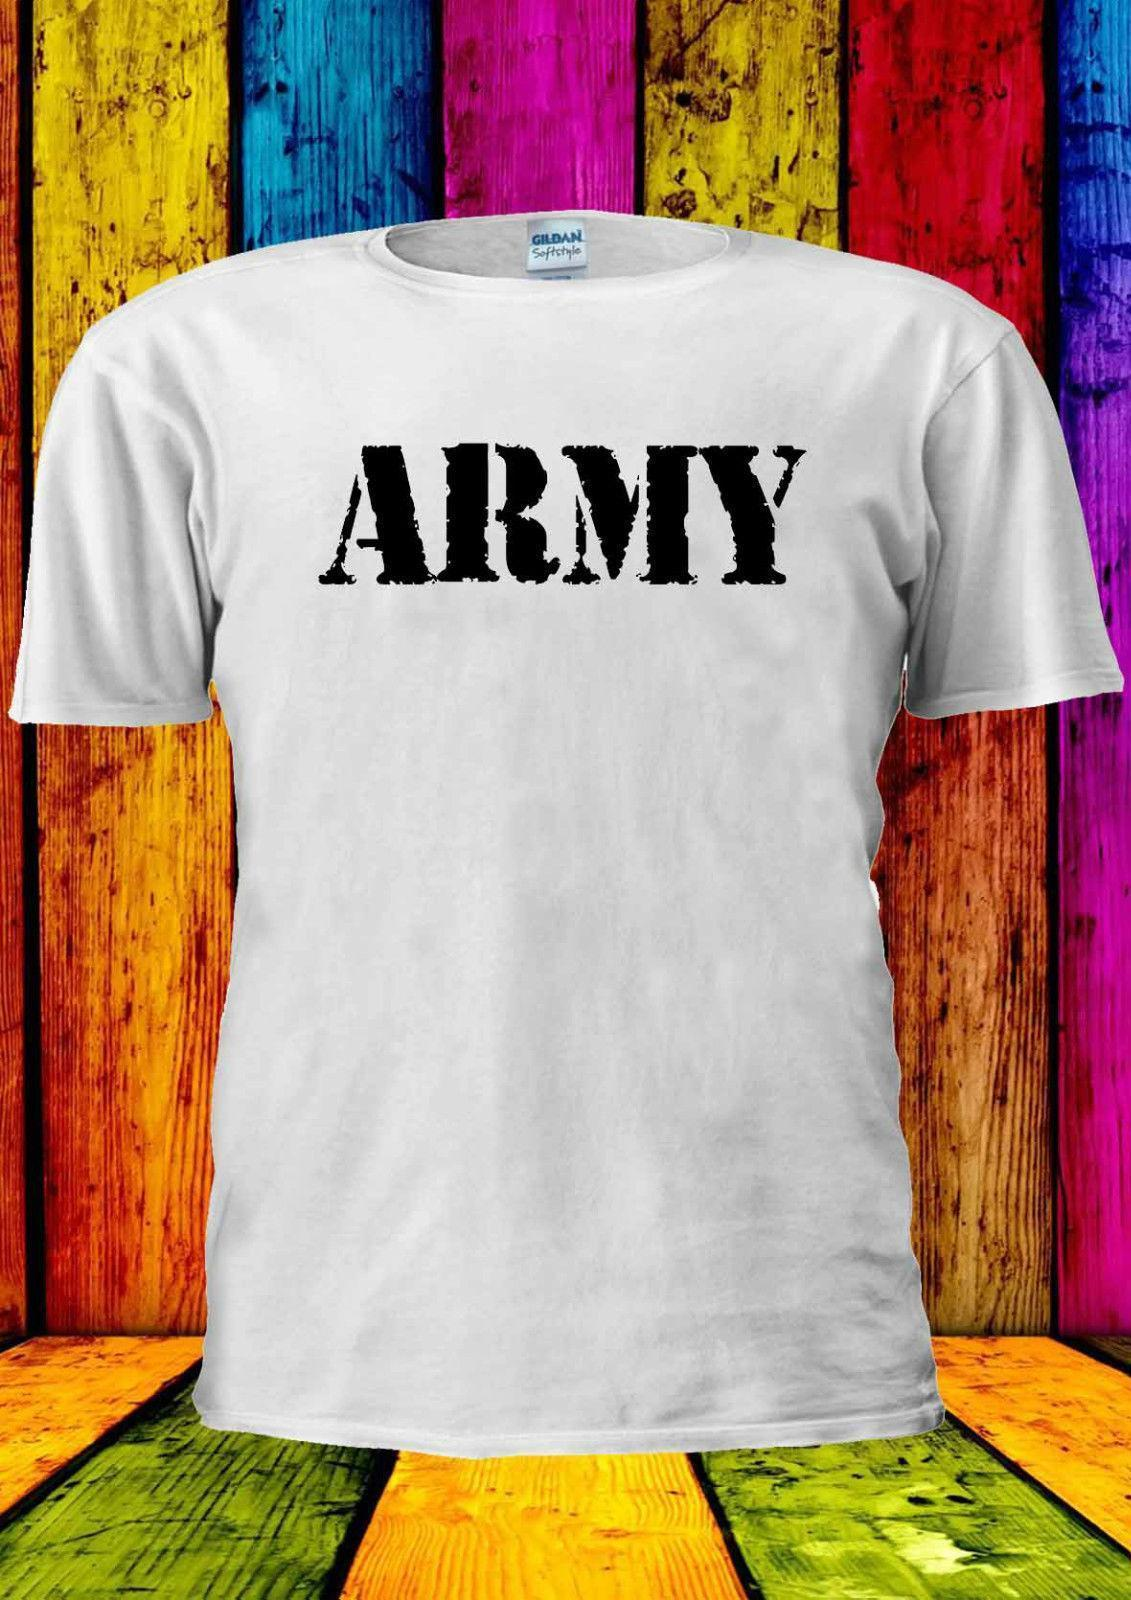 a5bb79531973 Army Military US British Surplus T Shirt Vest Tank Top Men Women Unisex  1991 Go T Shirts Really Funny Shirts From Jie12, $14.67| DHgate.Com